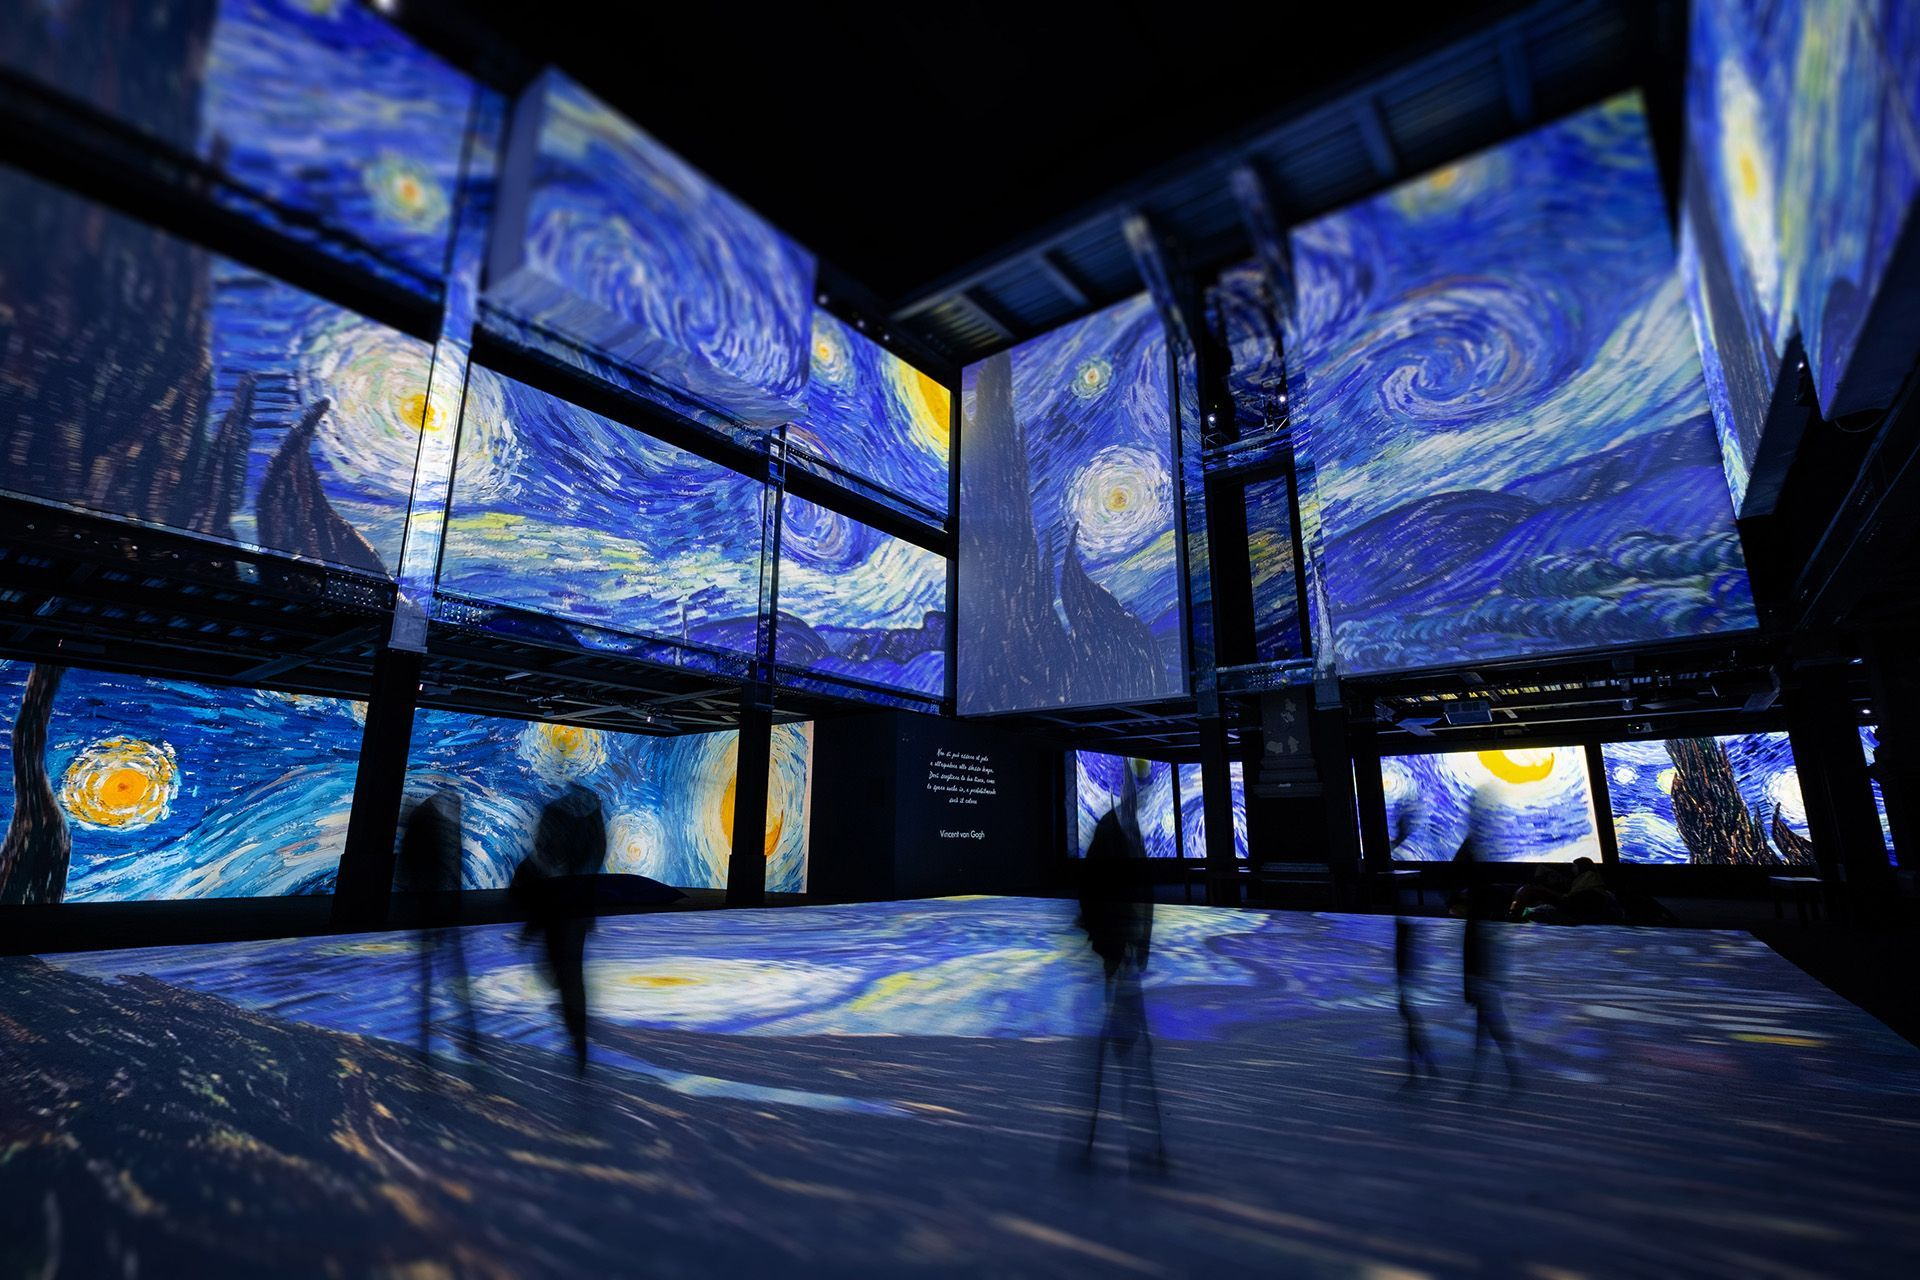 Van Gogh Interactive Exhibition Van Gogh Exhibition Starry Night Van Gogh Van Gogh